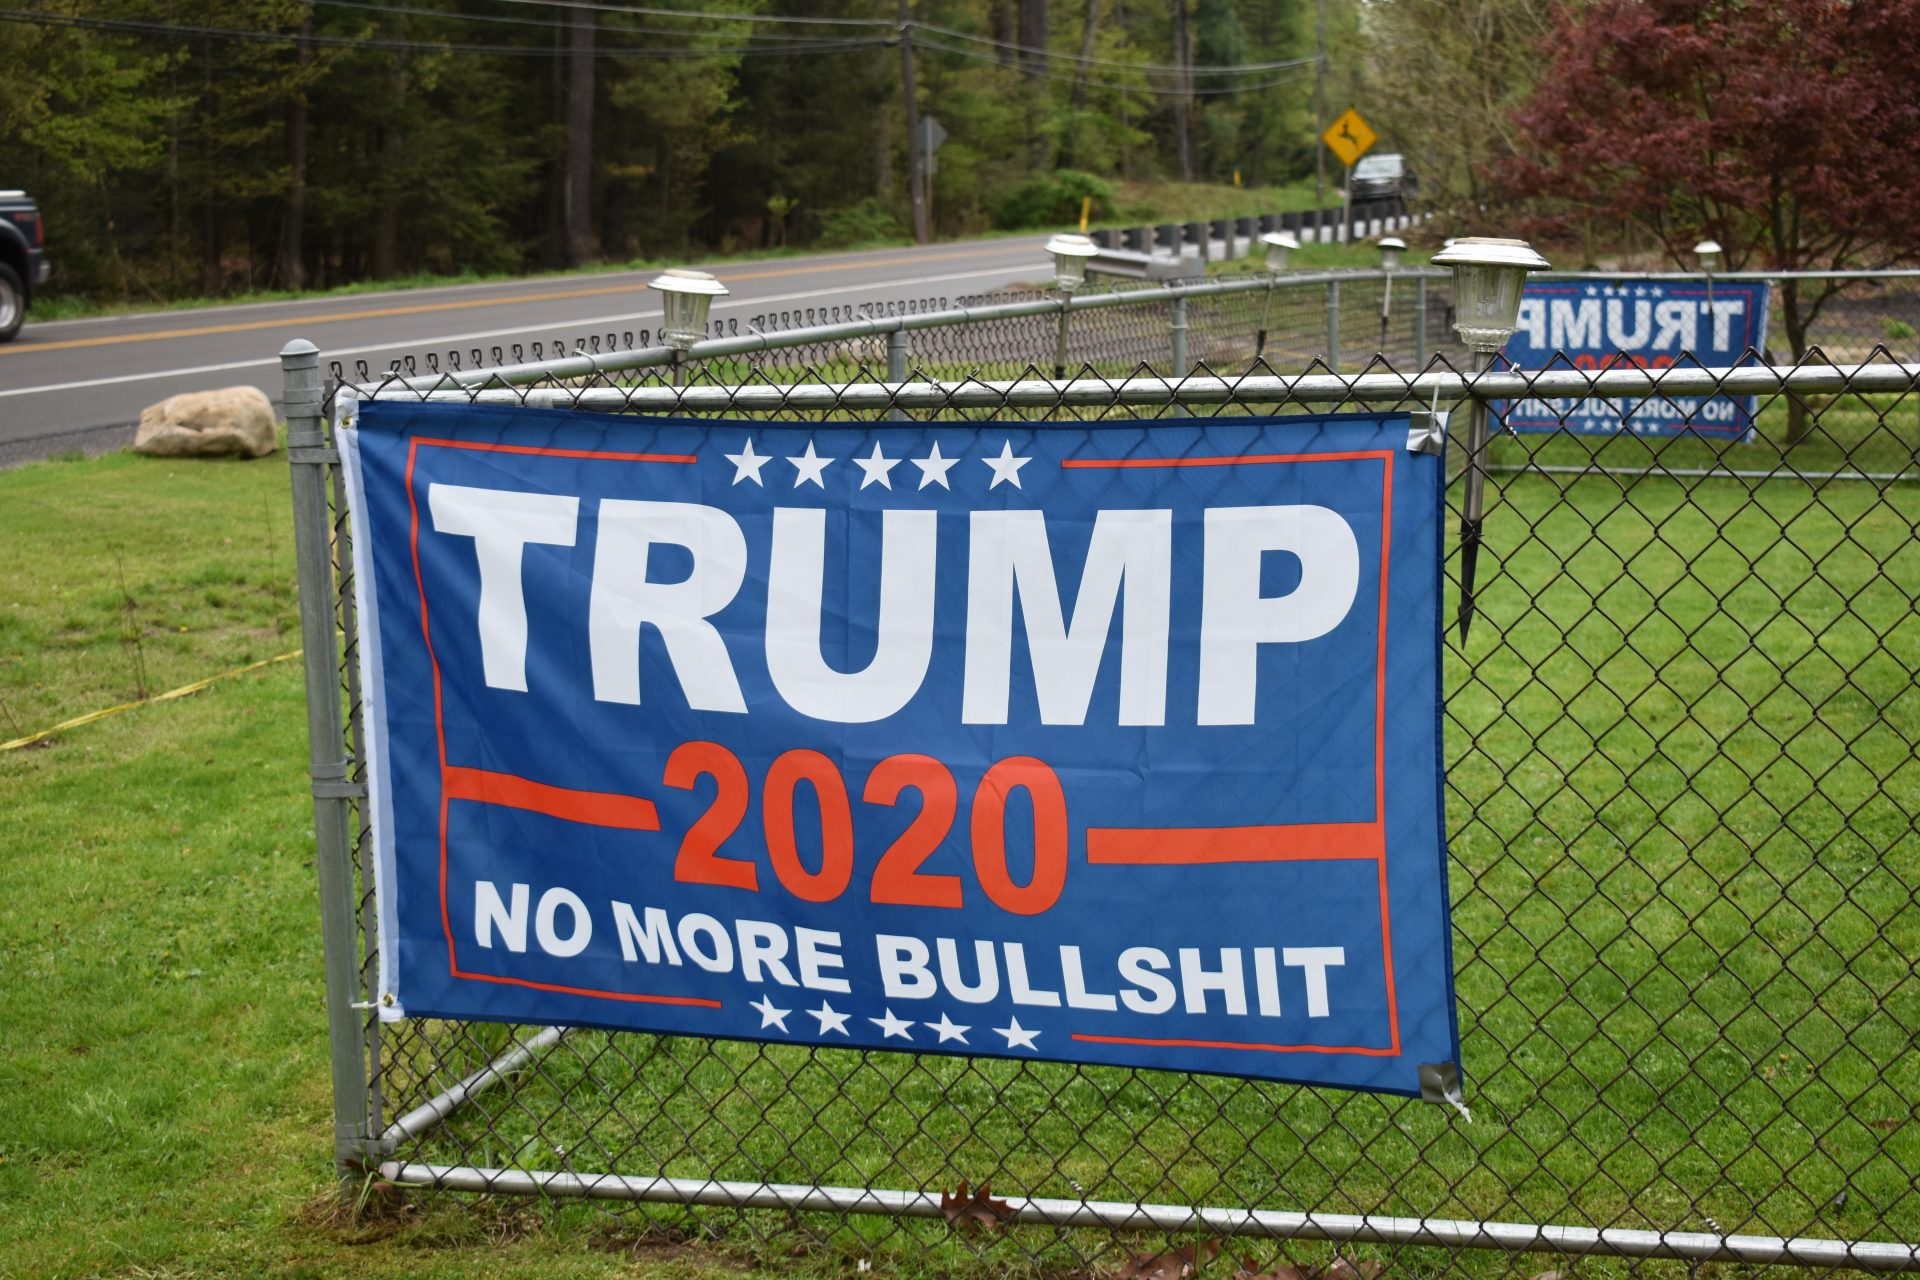 Daniel Klein hung up this flag, seen on May 3, 2019, in support of Republican Donald Trump. Klein has two such flags outside his Wyoming County home.